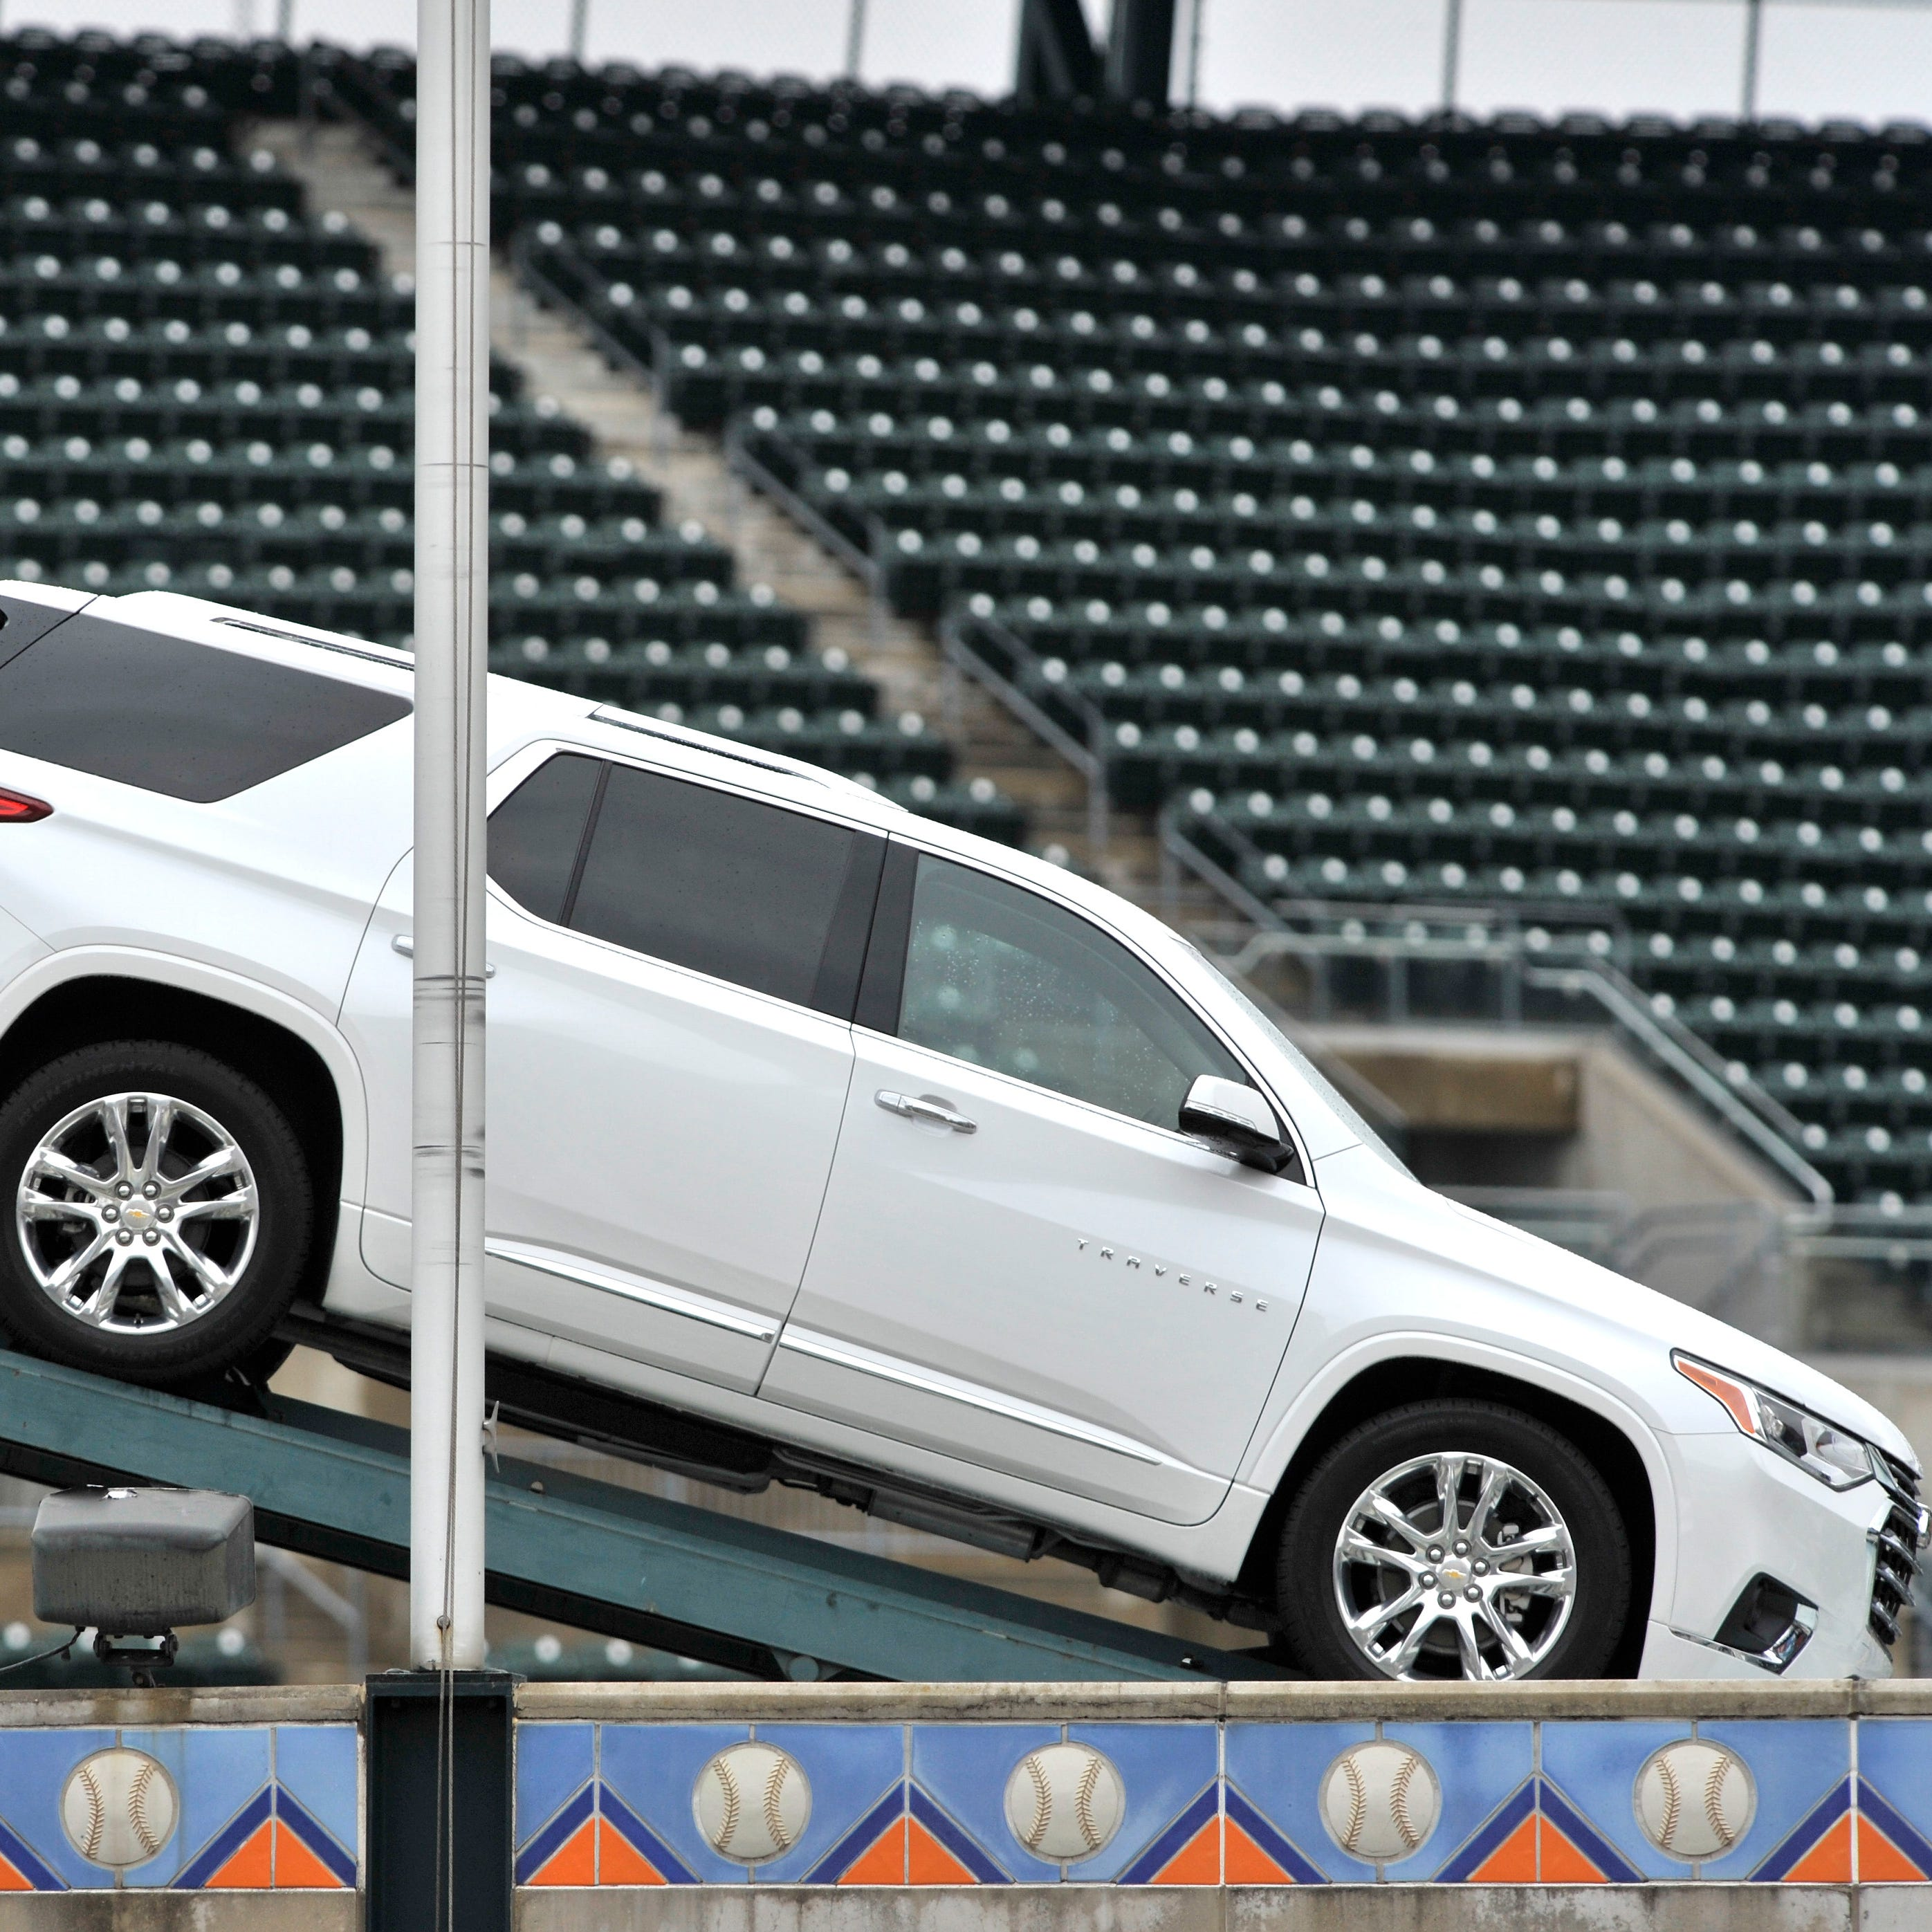 Mexico-built Chevy Blazer removed from Comerica Park display to avoid 'distractions'